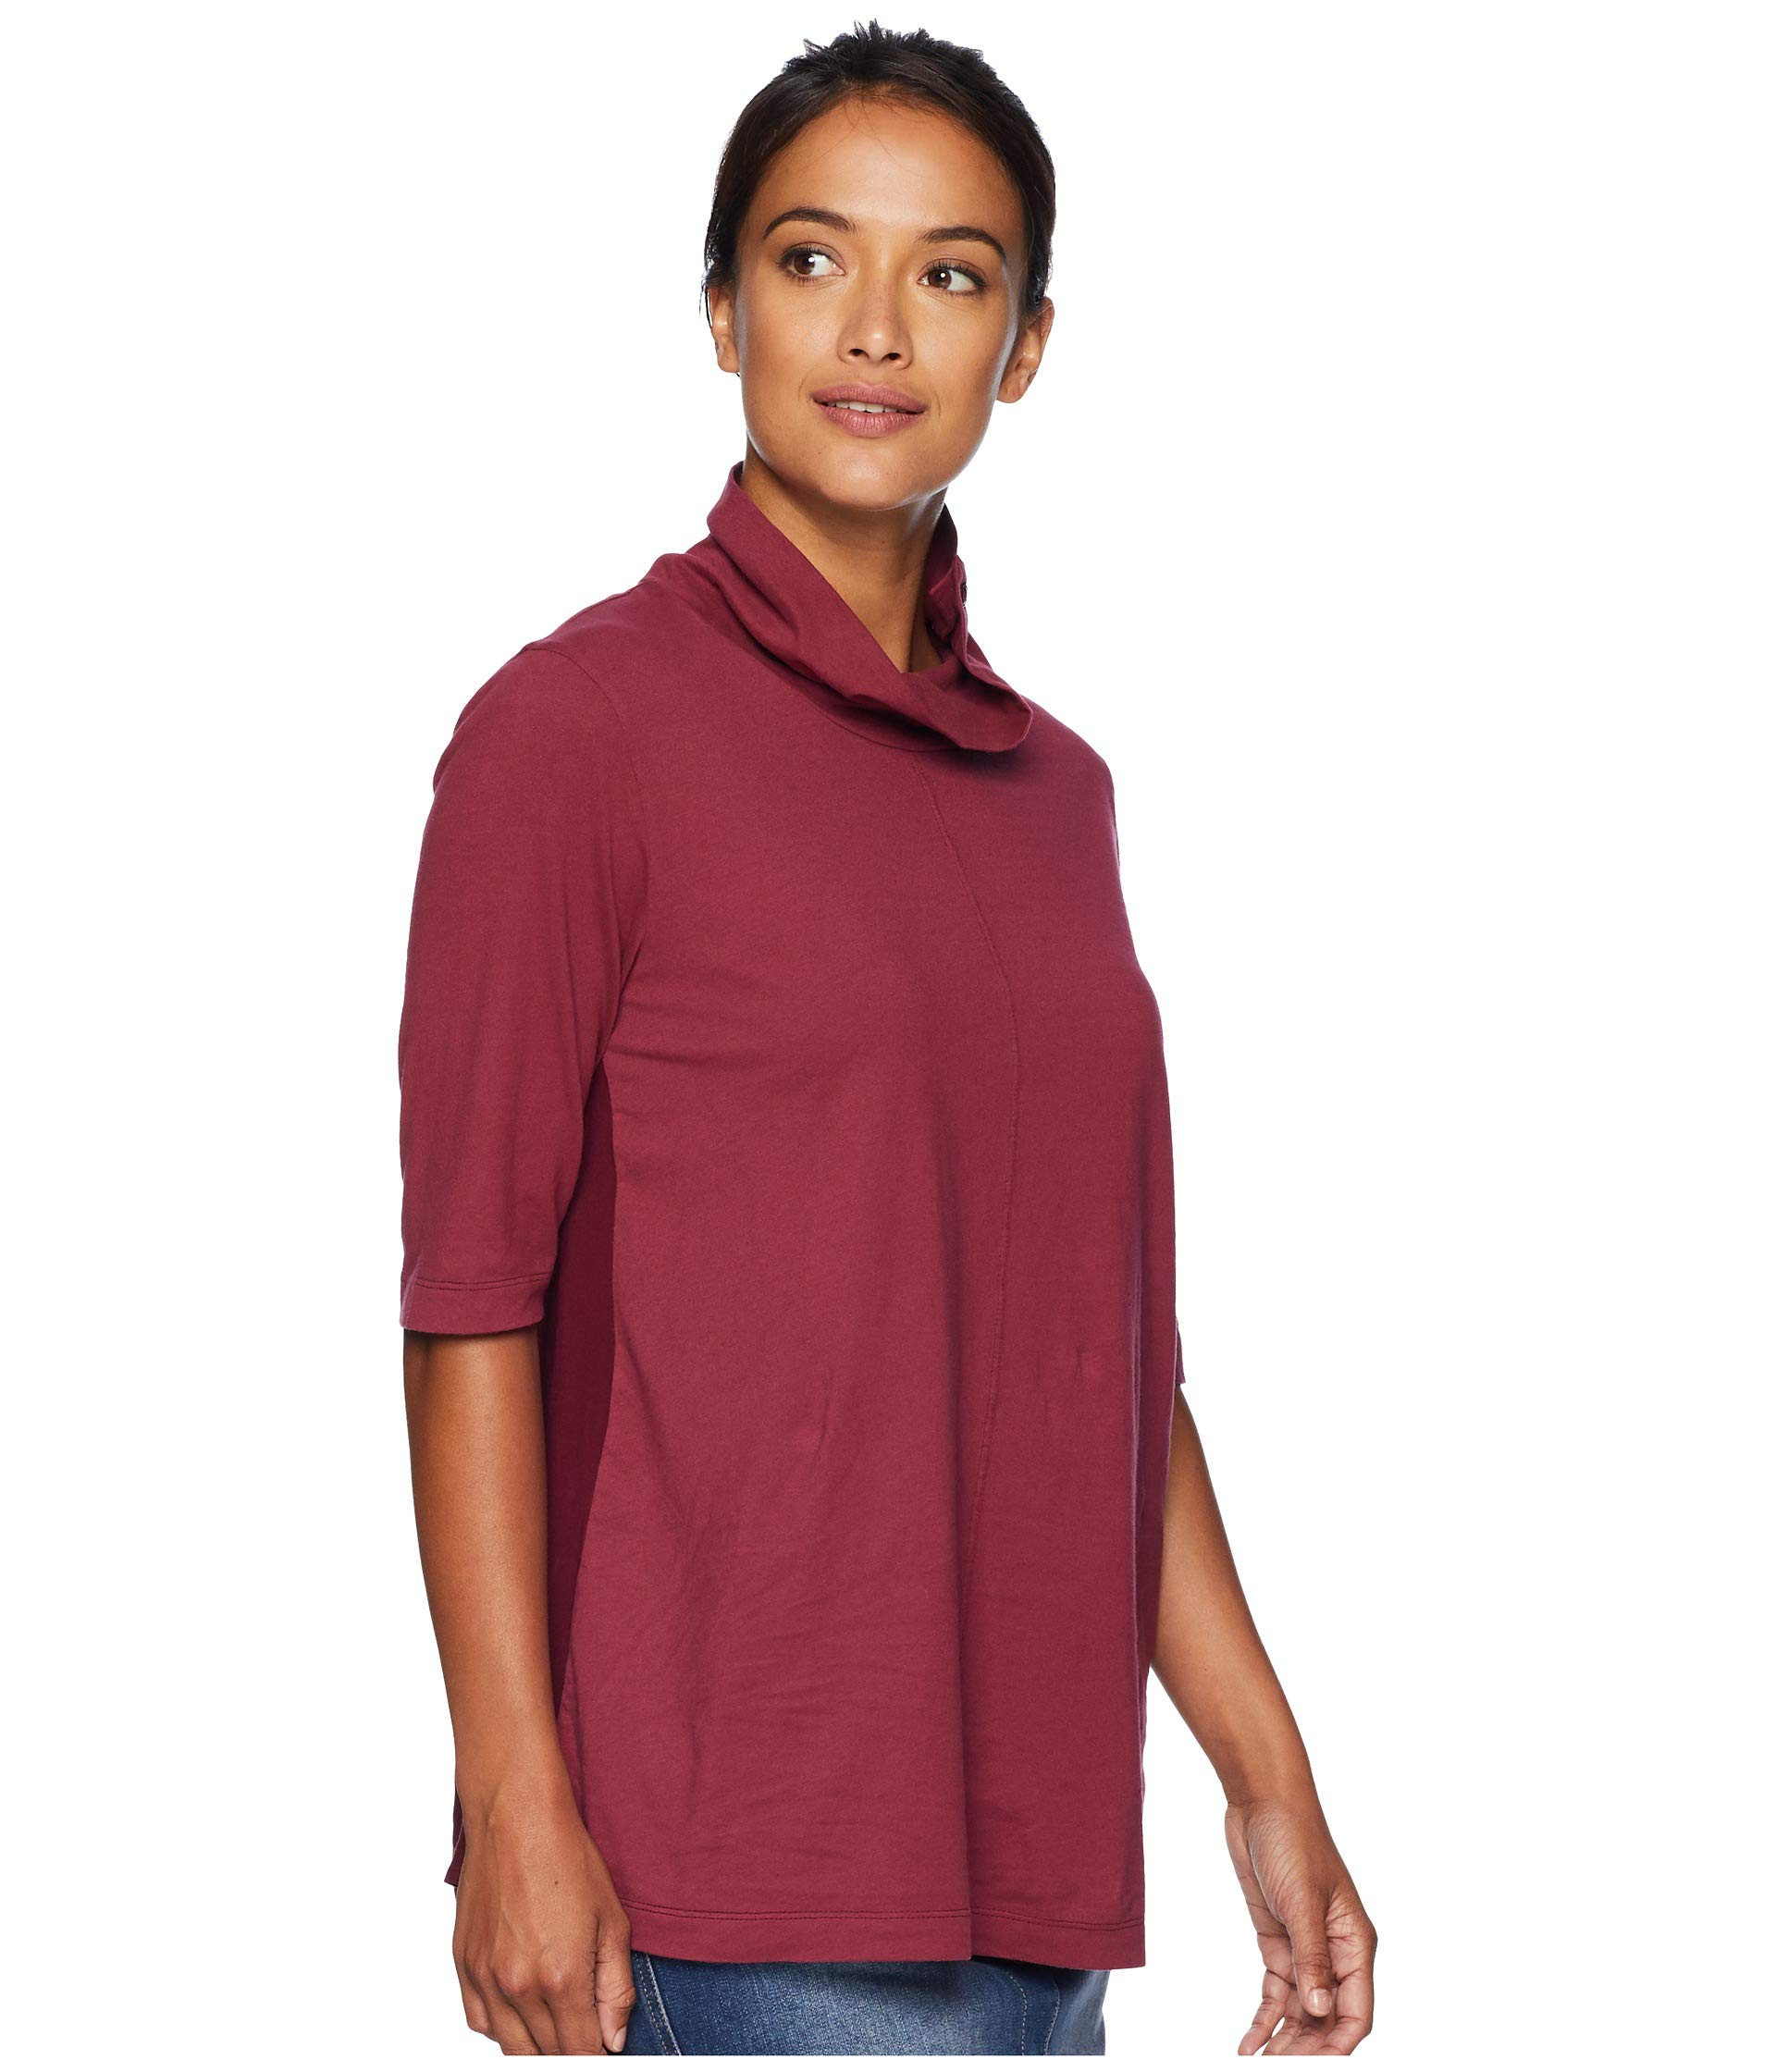 o Tee Elbow Back Pleated Sleeve With Neck Jersey Cranberry Classic doc Mod Button dqZ8d4